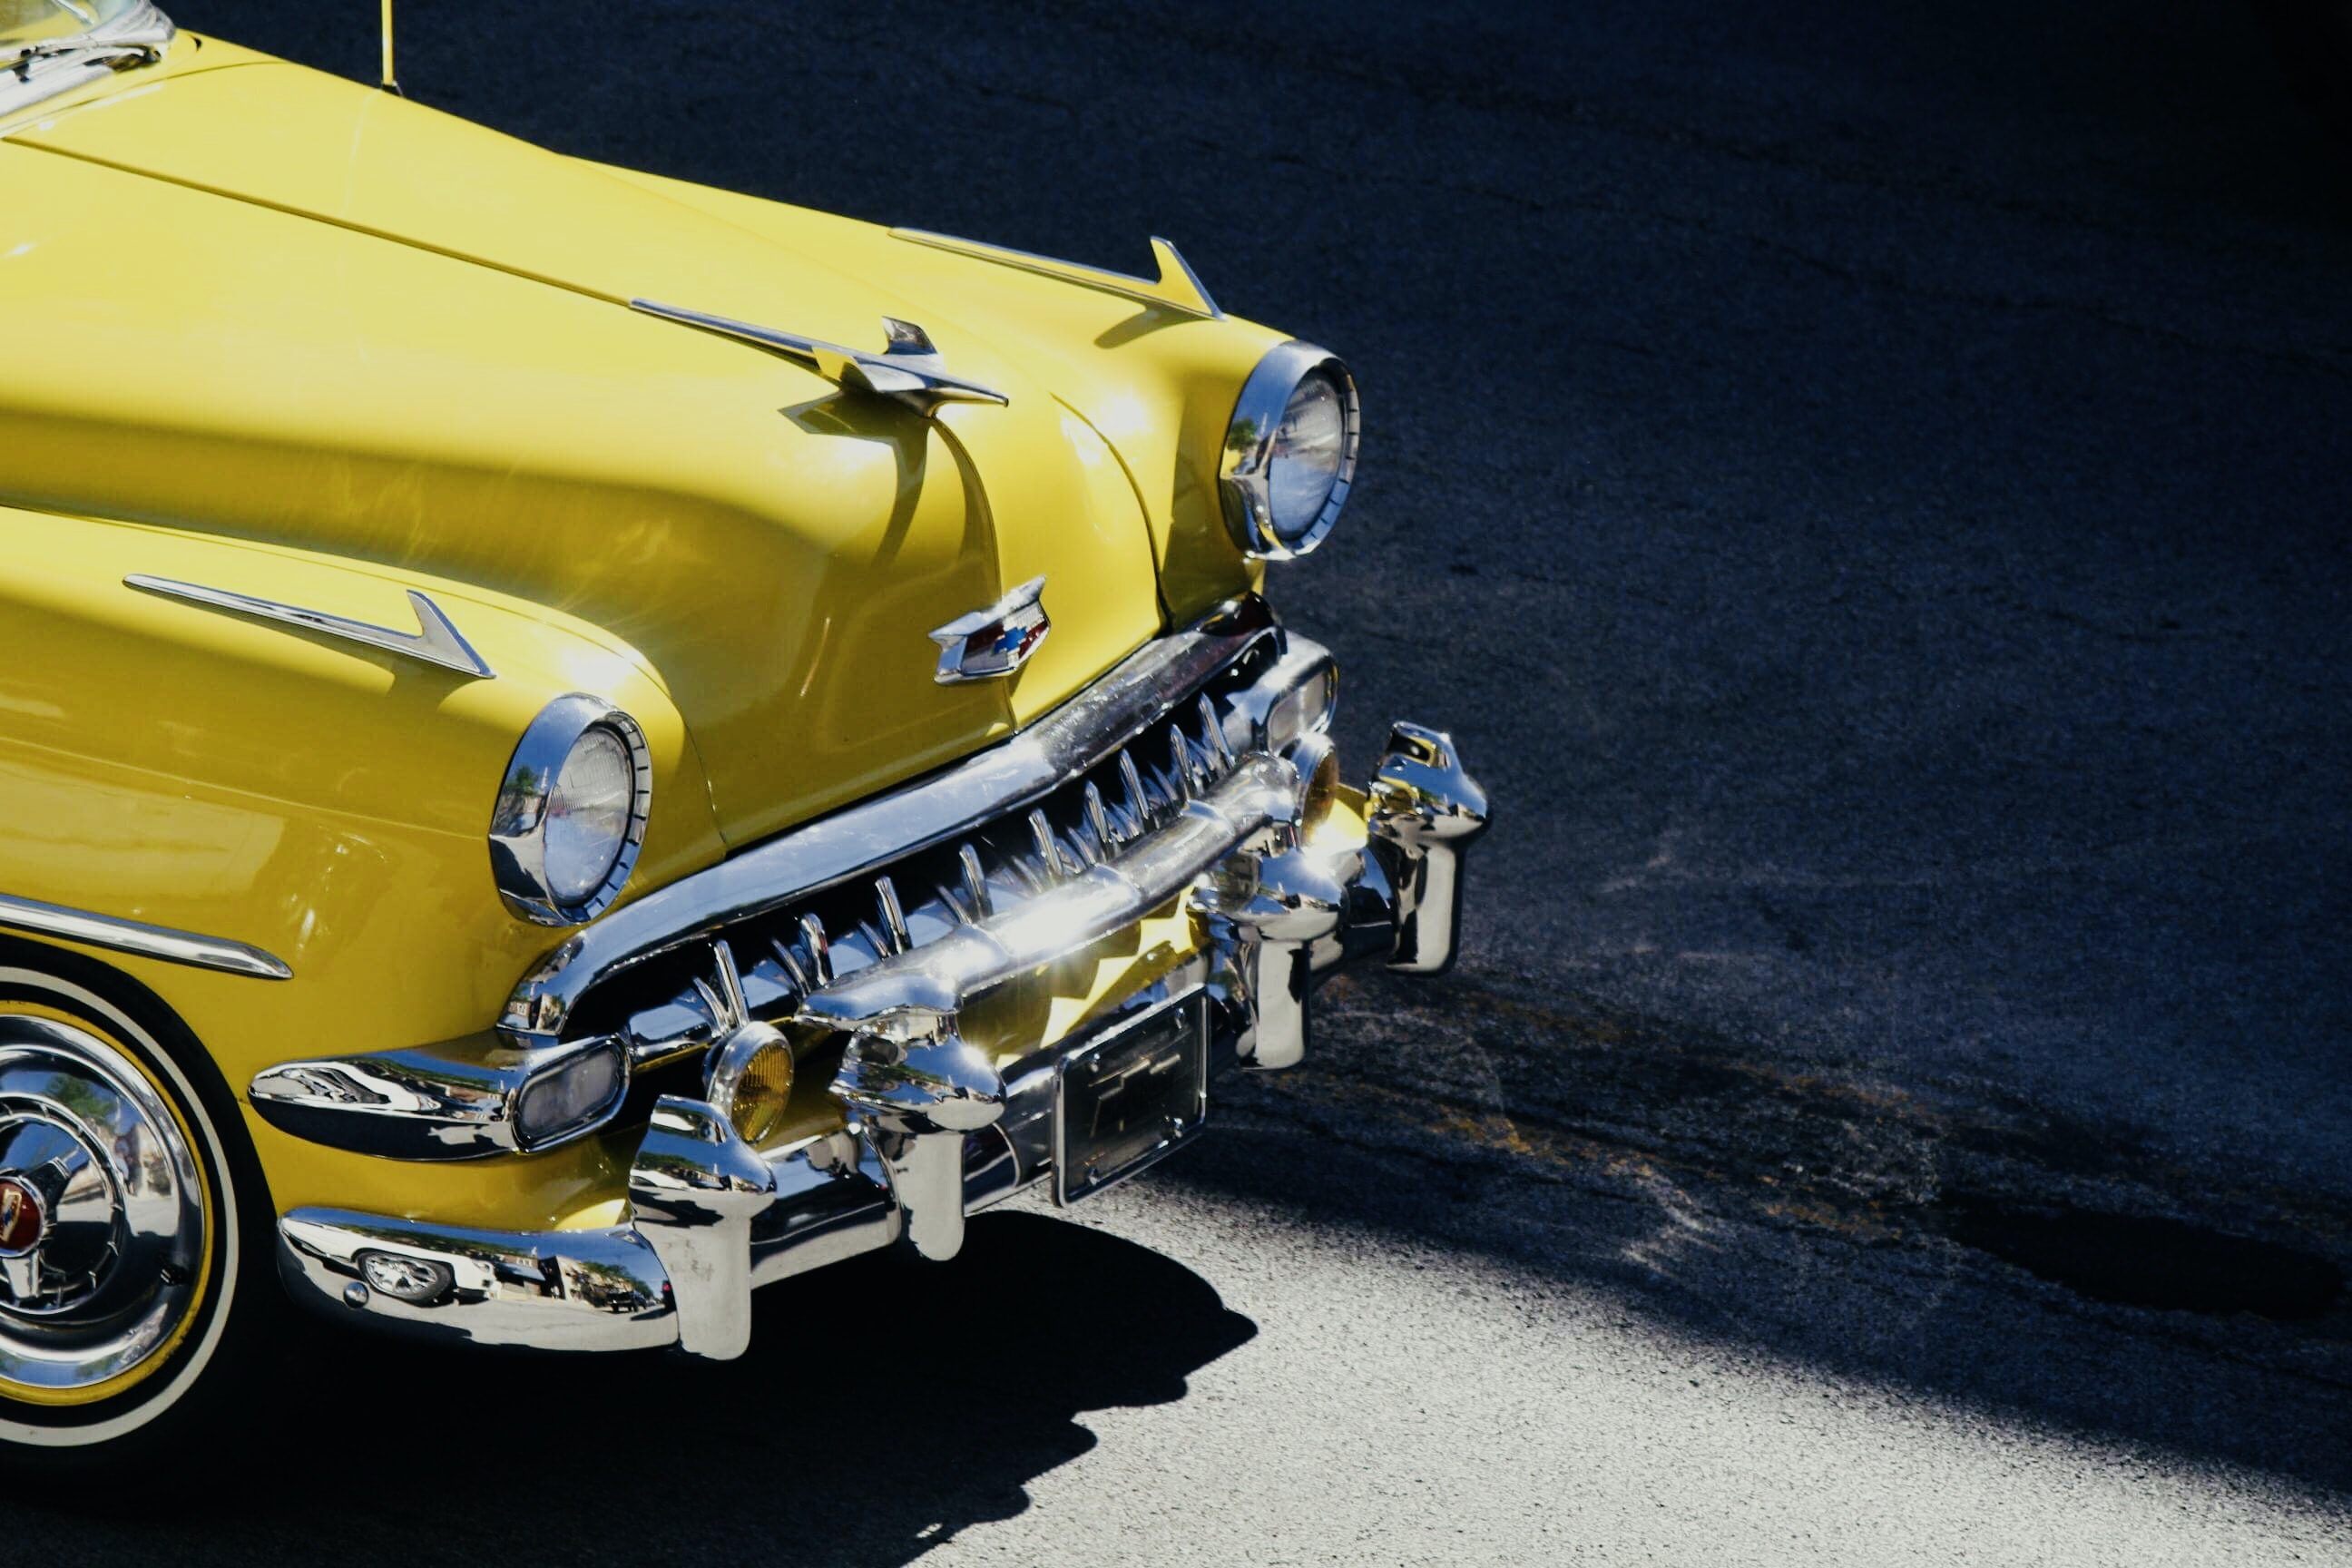 photo of yellow Cadillac car